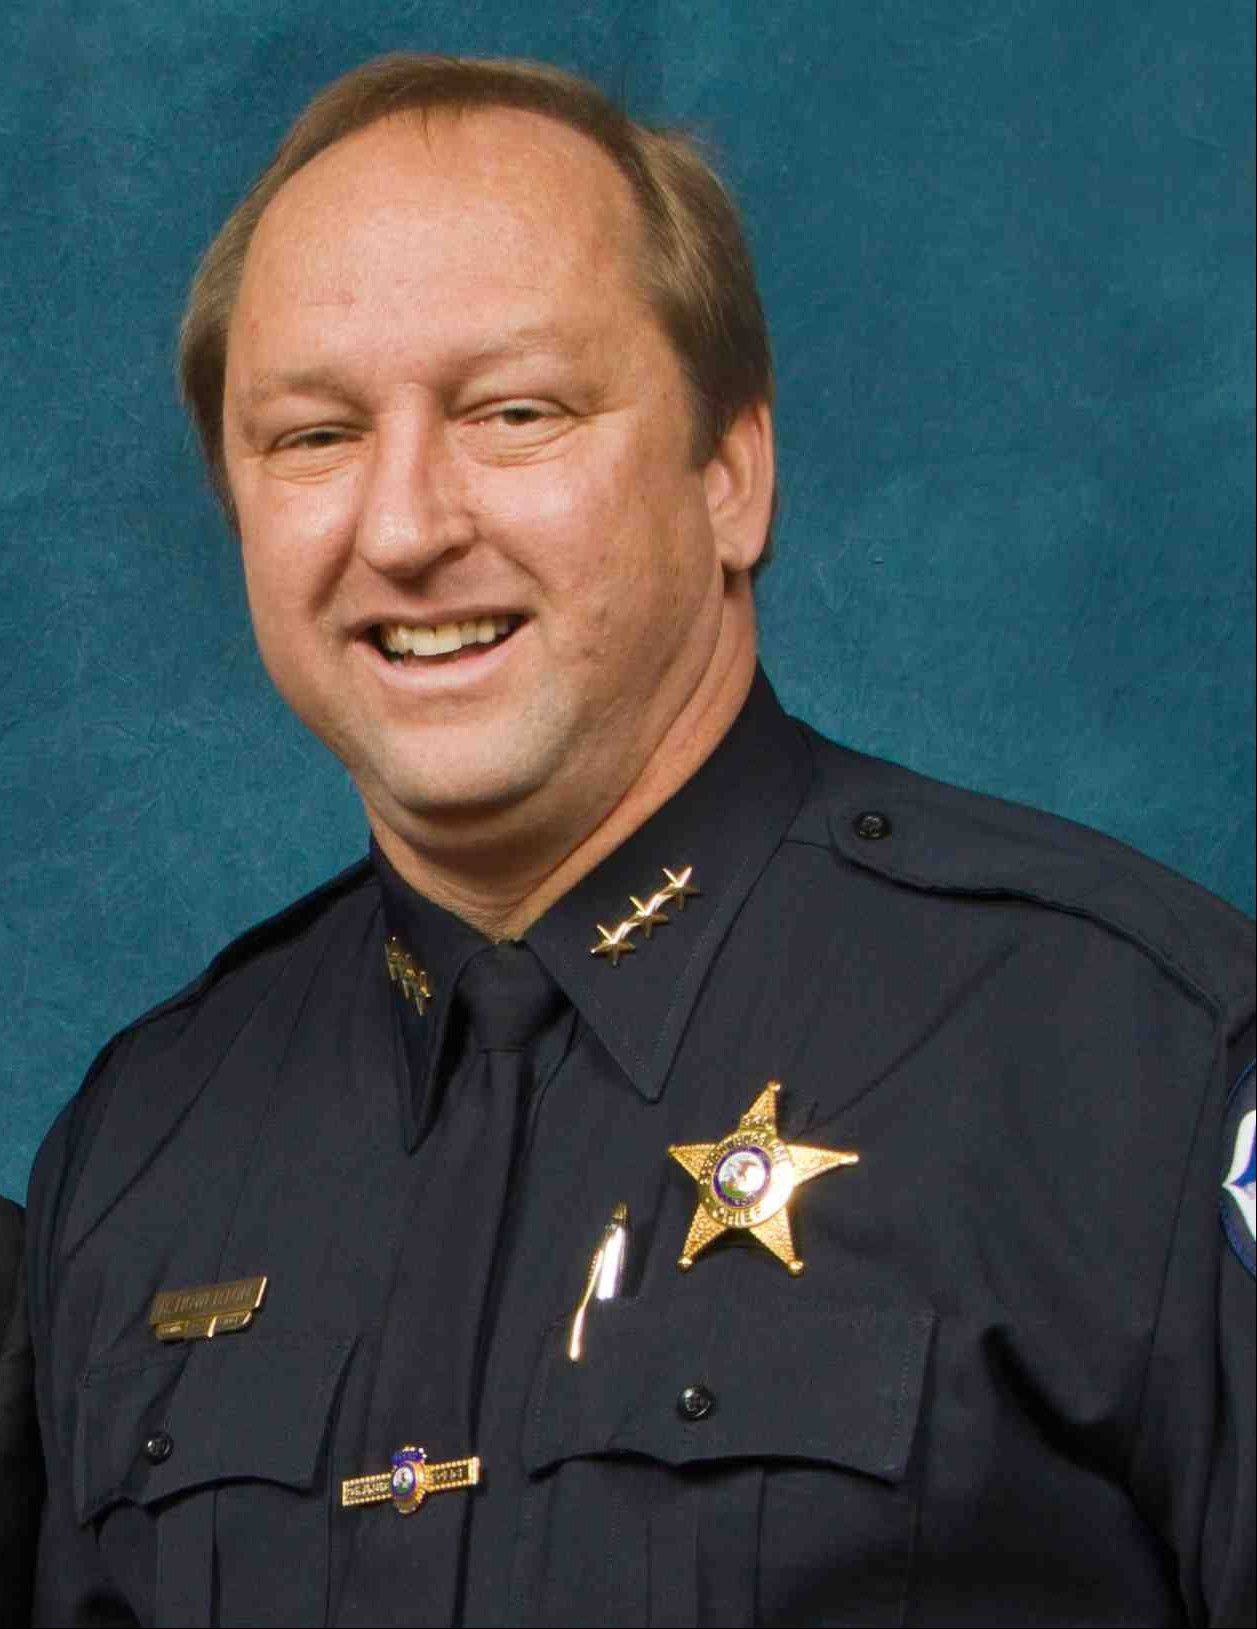 Complaint filed against Schaumburg police chief